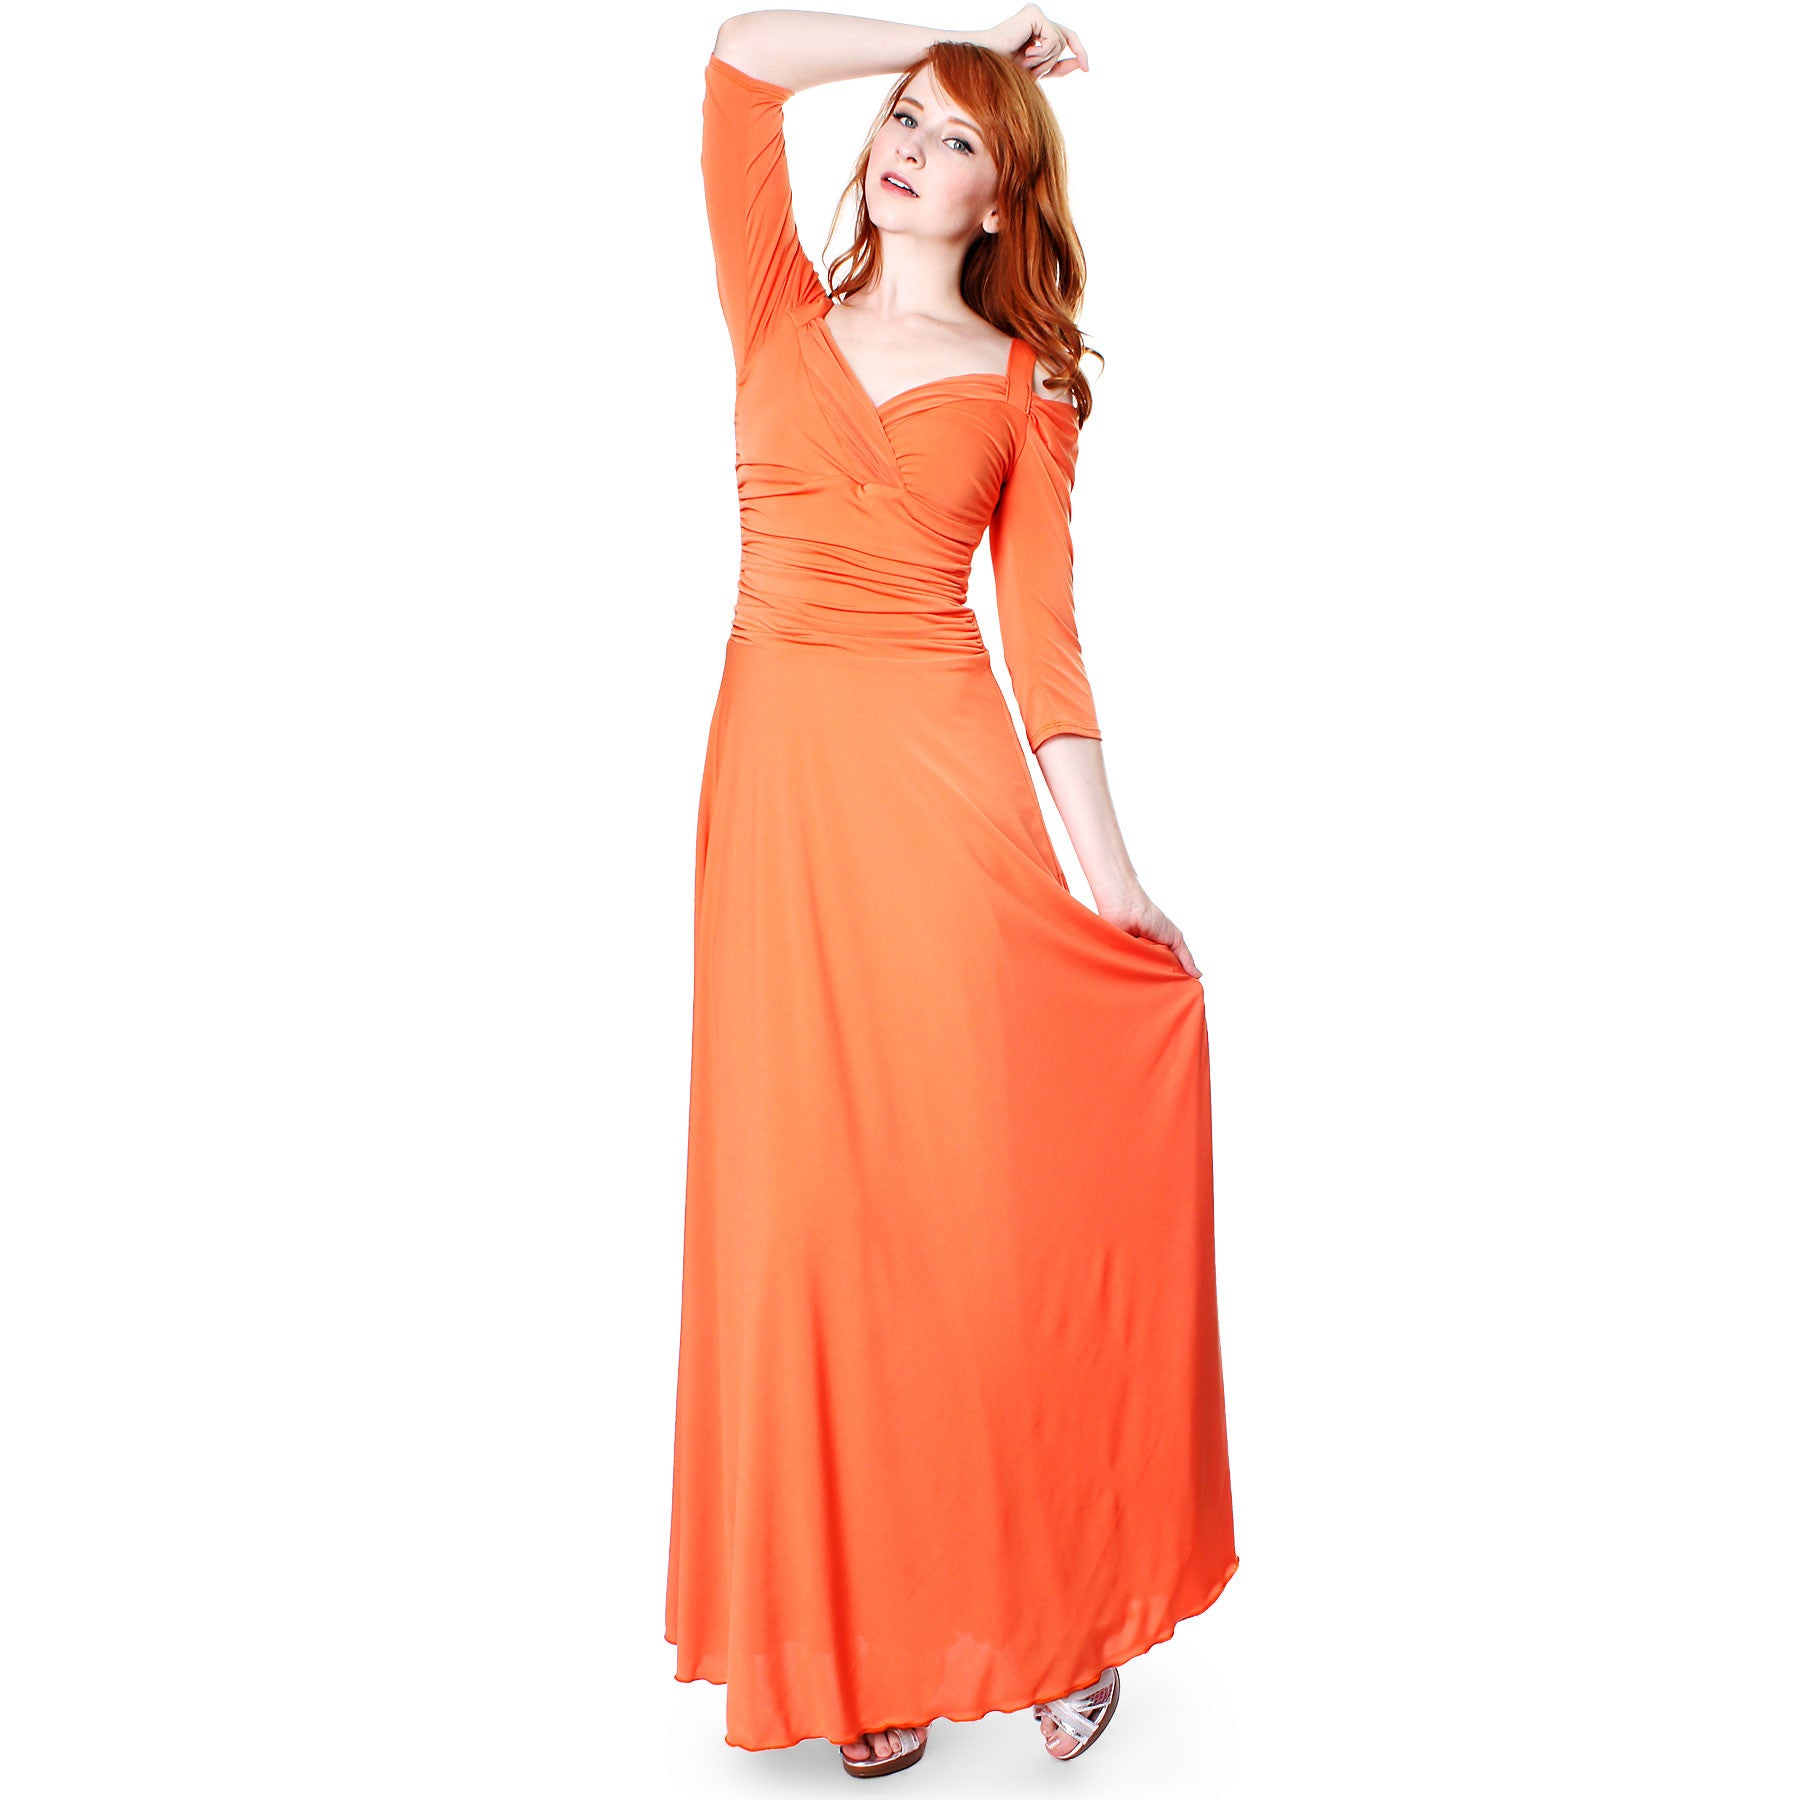 Evanese Women s Elegant Formal Long Evening Dress With 3 4 Sleeves ... cc462dad8